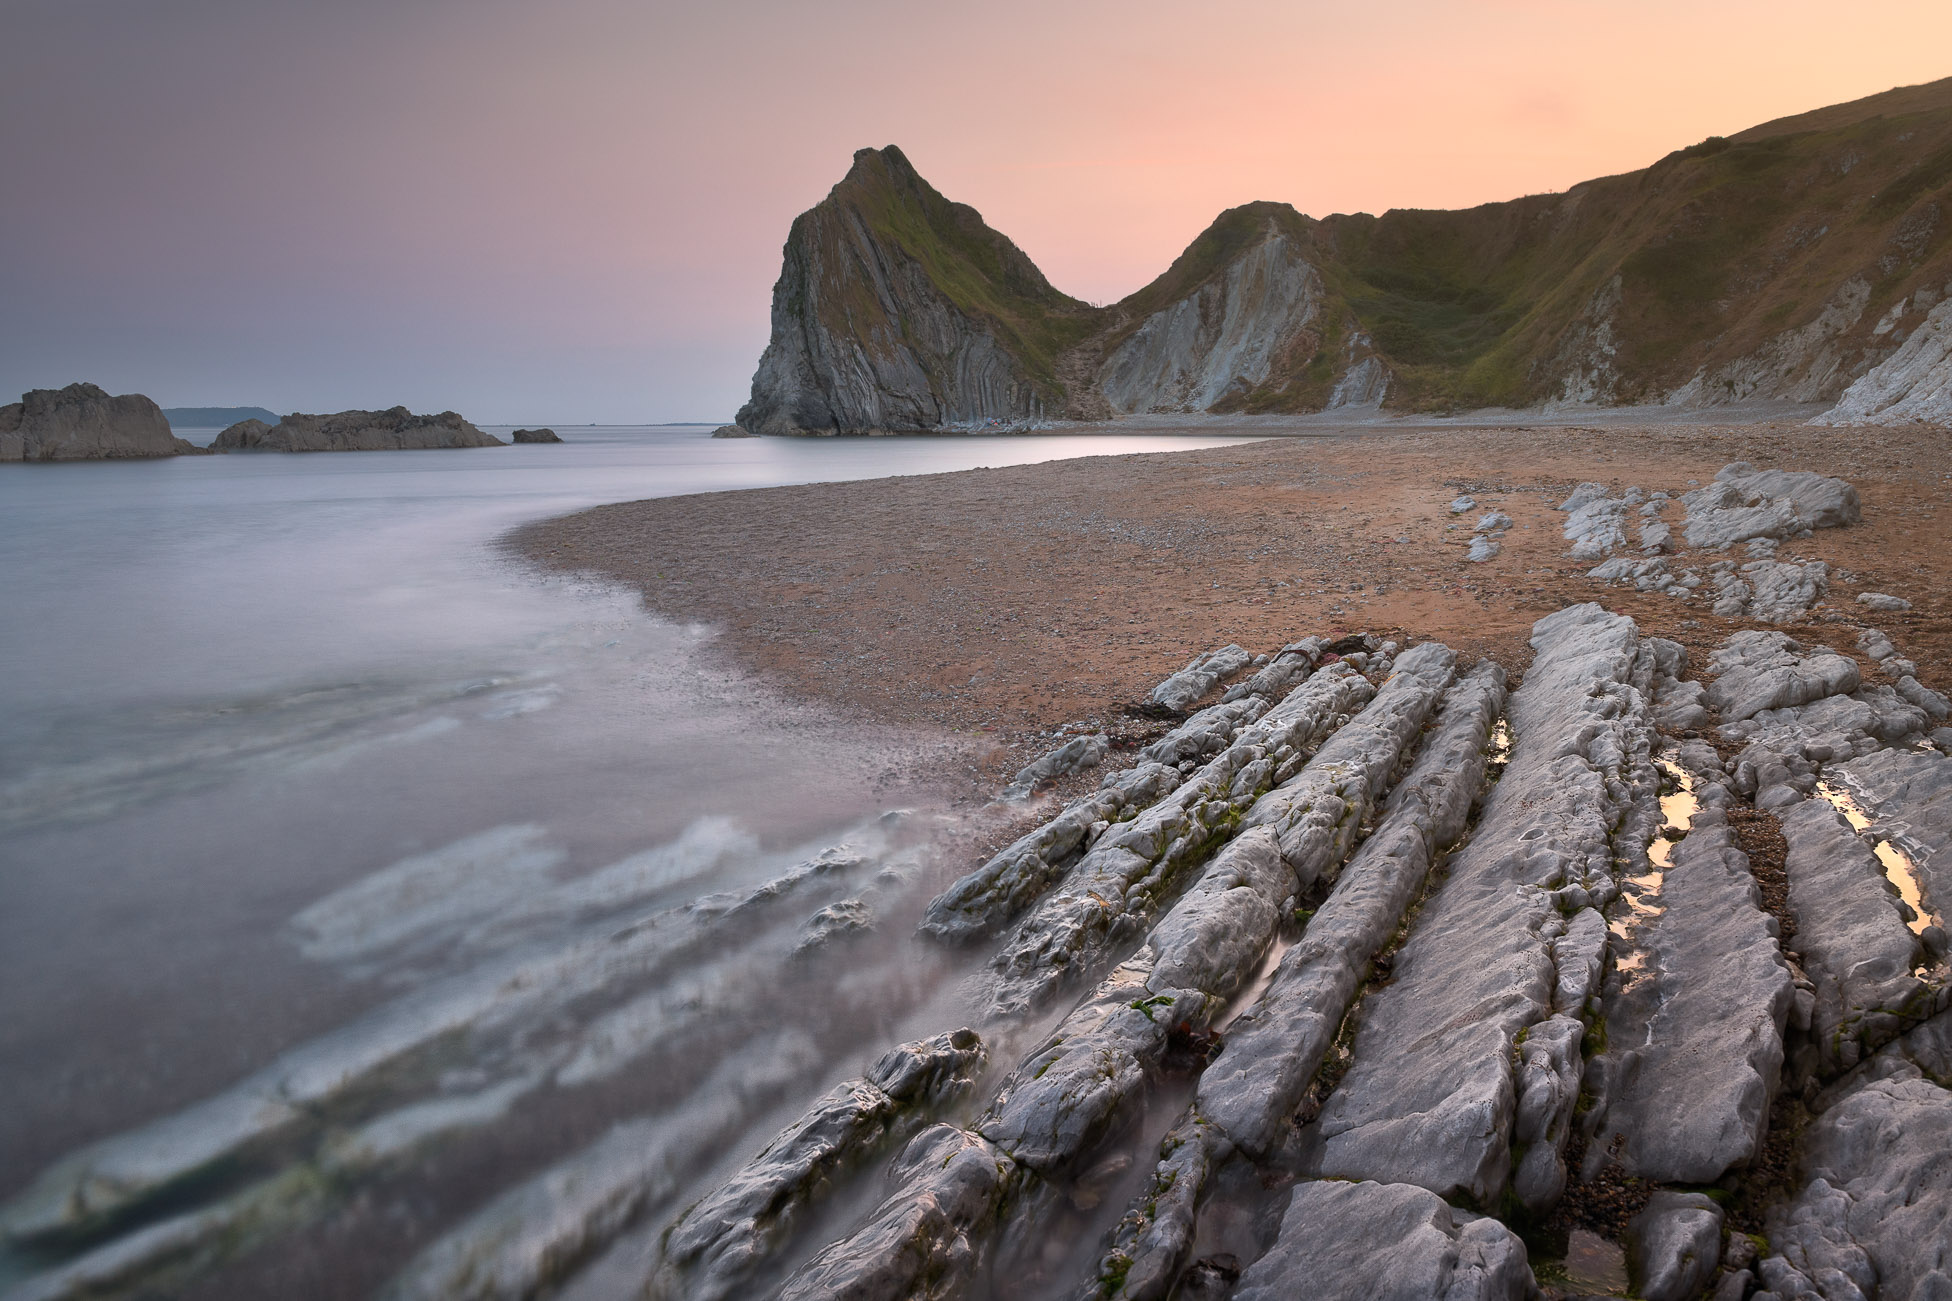 Man O'War Beach in the Evening, Dorset, United Kingdom